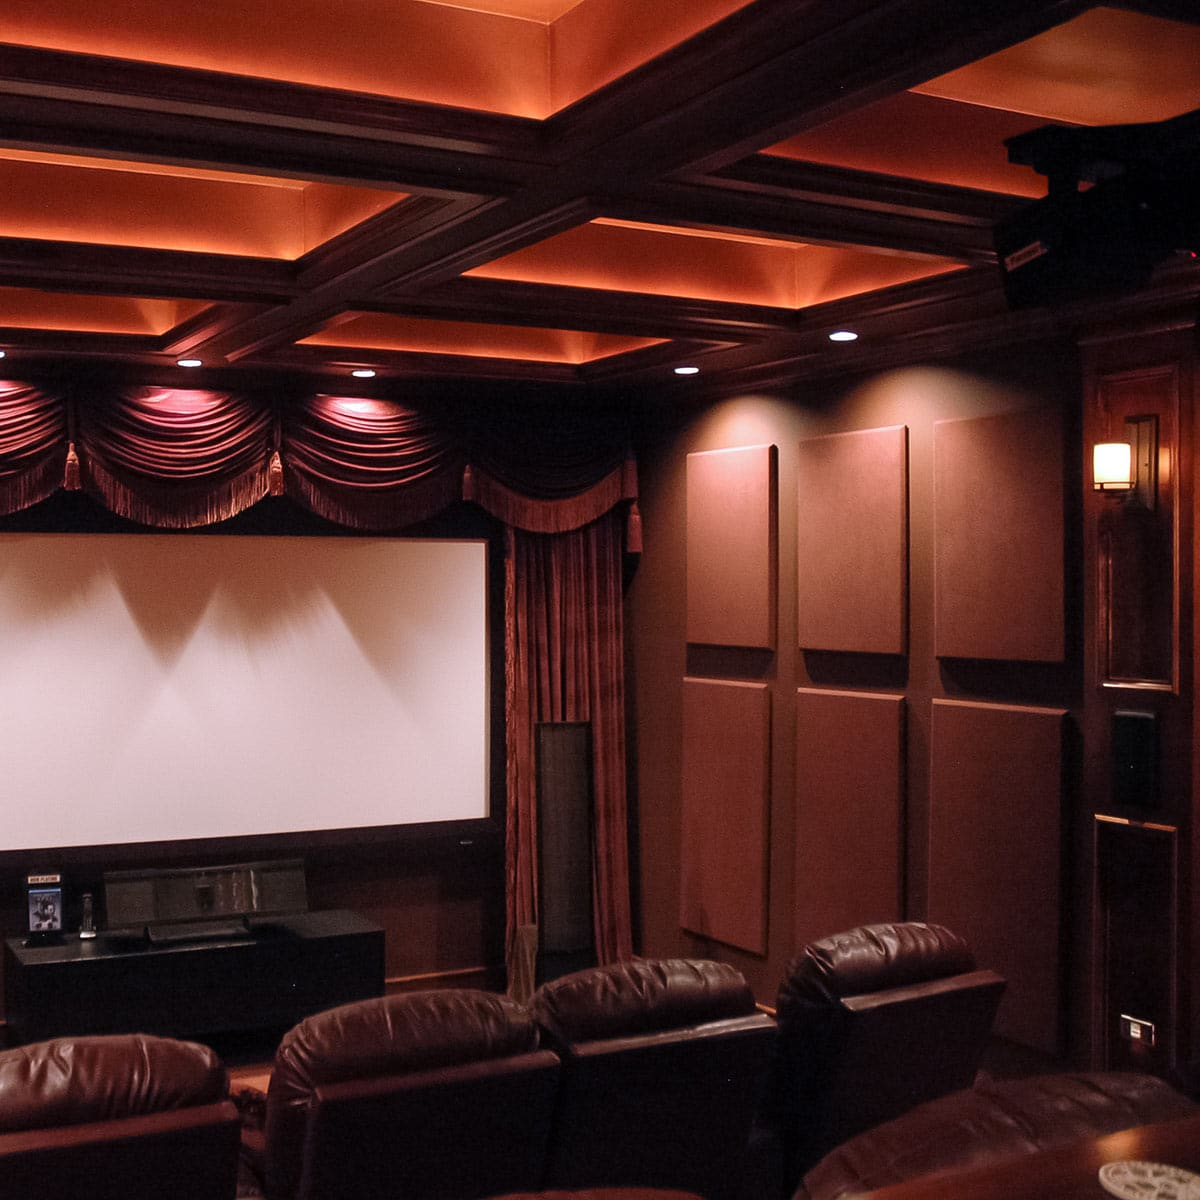 home theater acoustic wall panels. prevnext. jeff autor\u0027s home theater using absorptive soundsued acoustic wall panels. panels